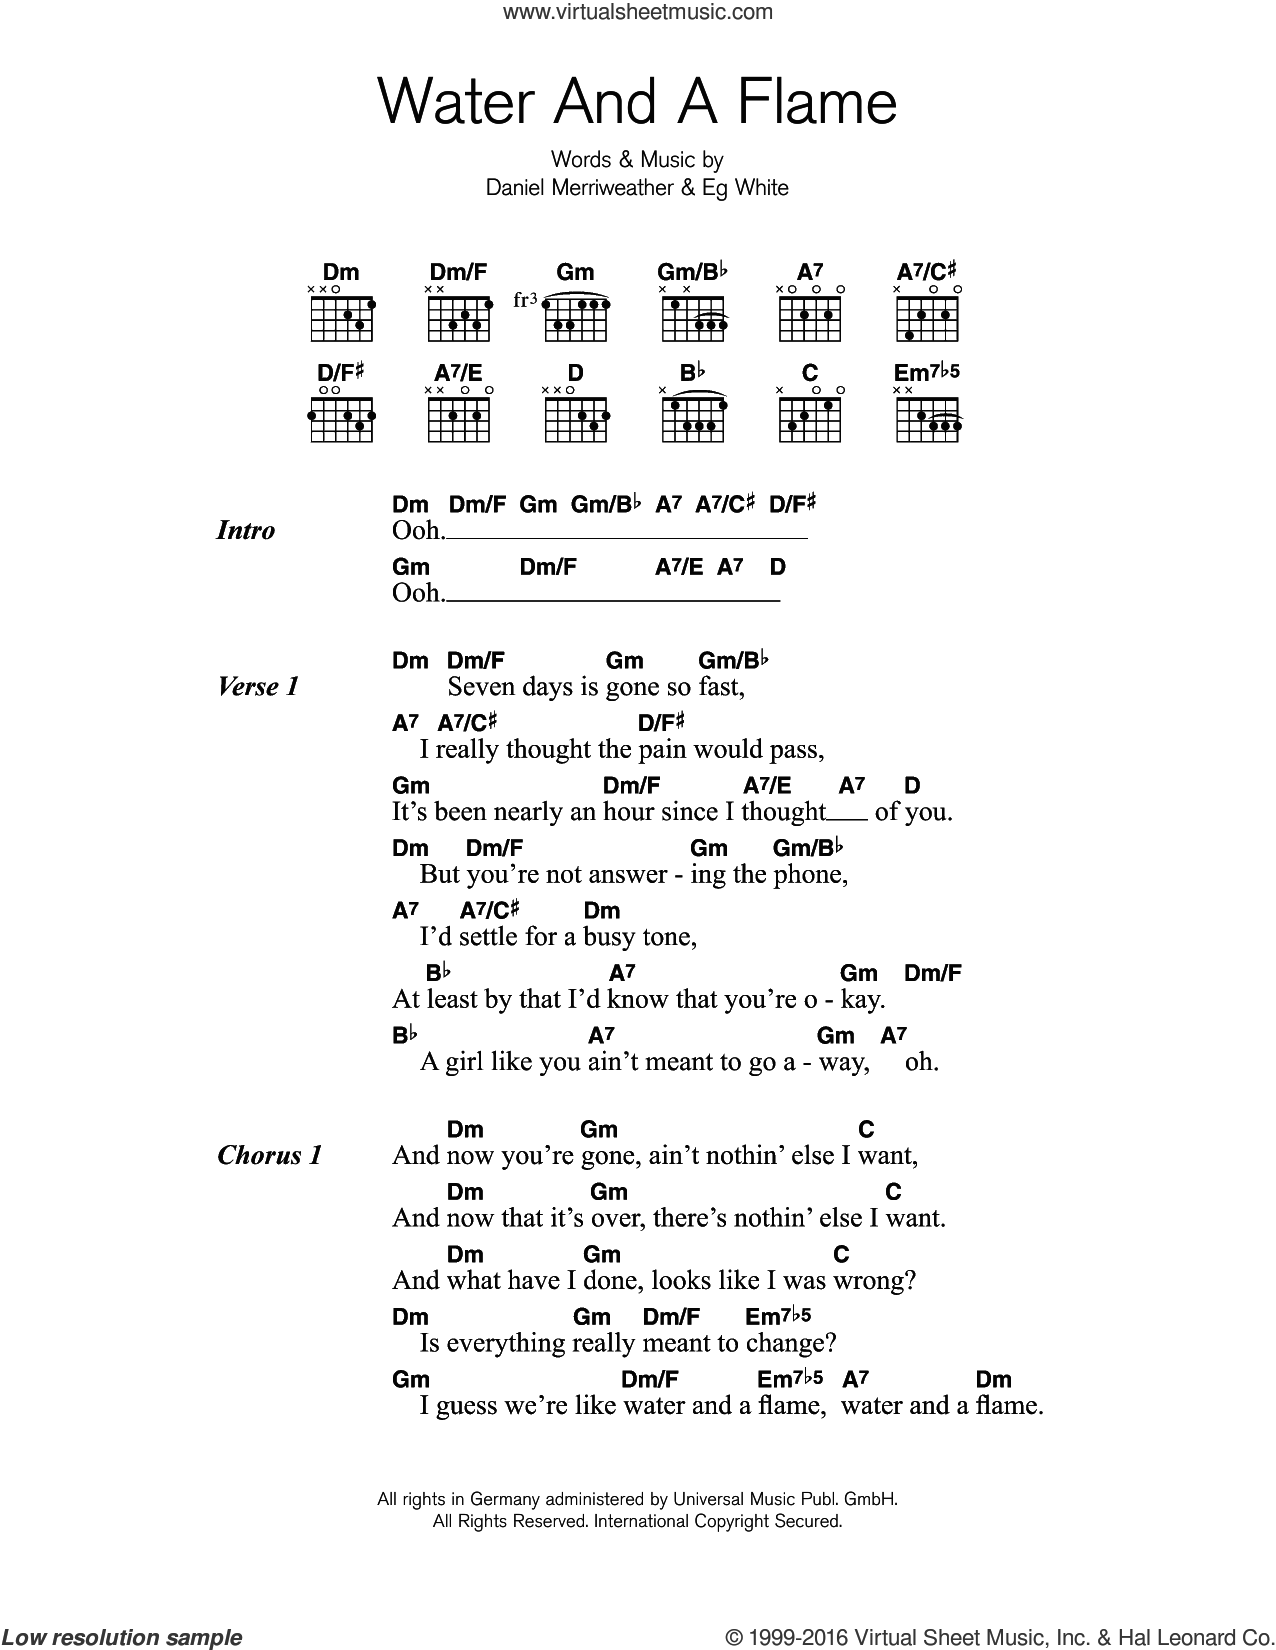 Water And A Flame (featuring Adele) sheet music for guitar (chords) by Eg White